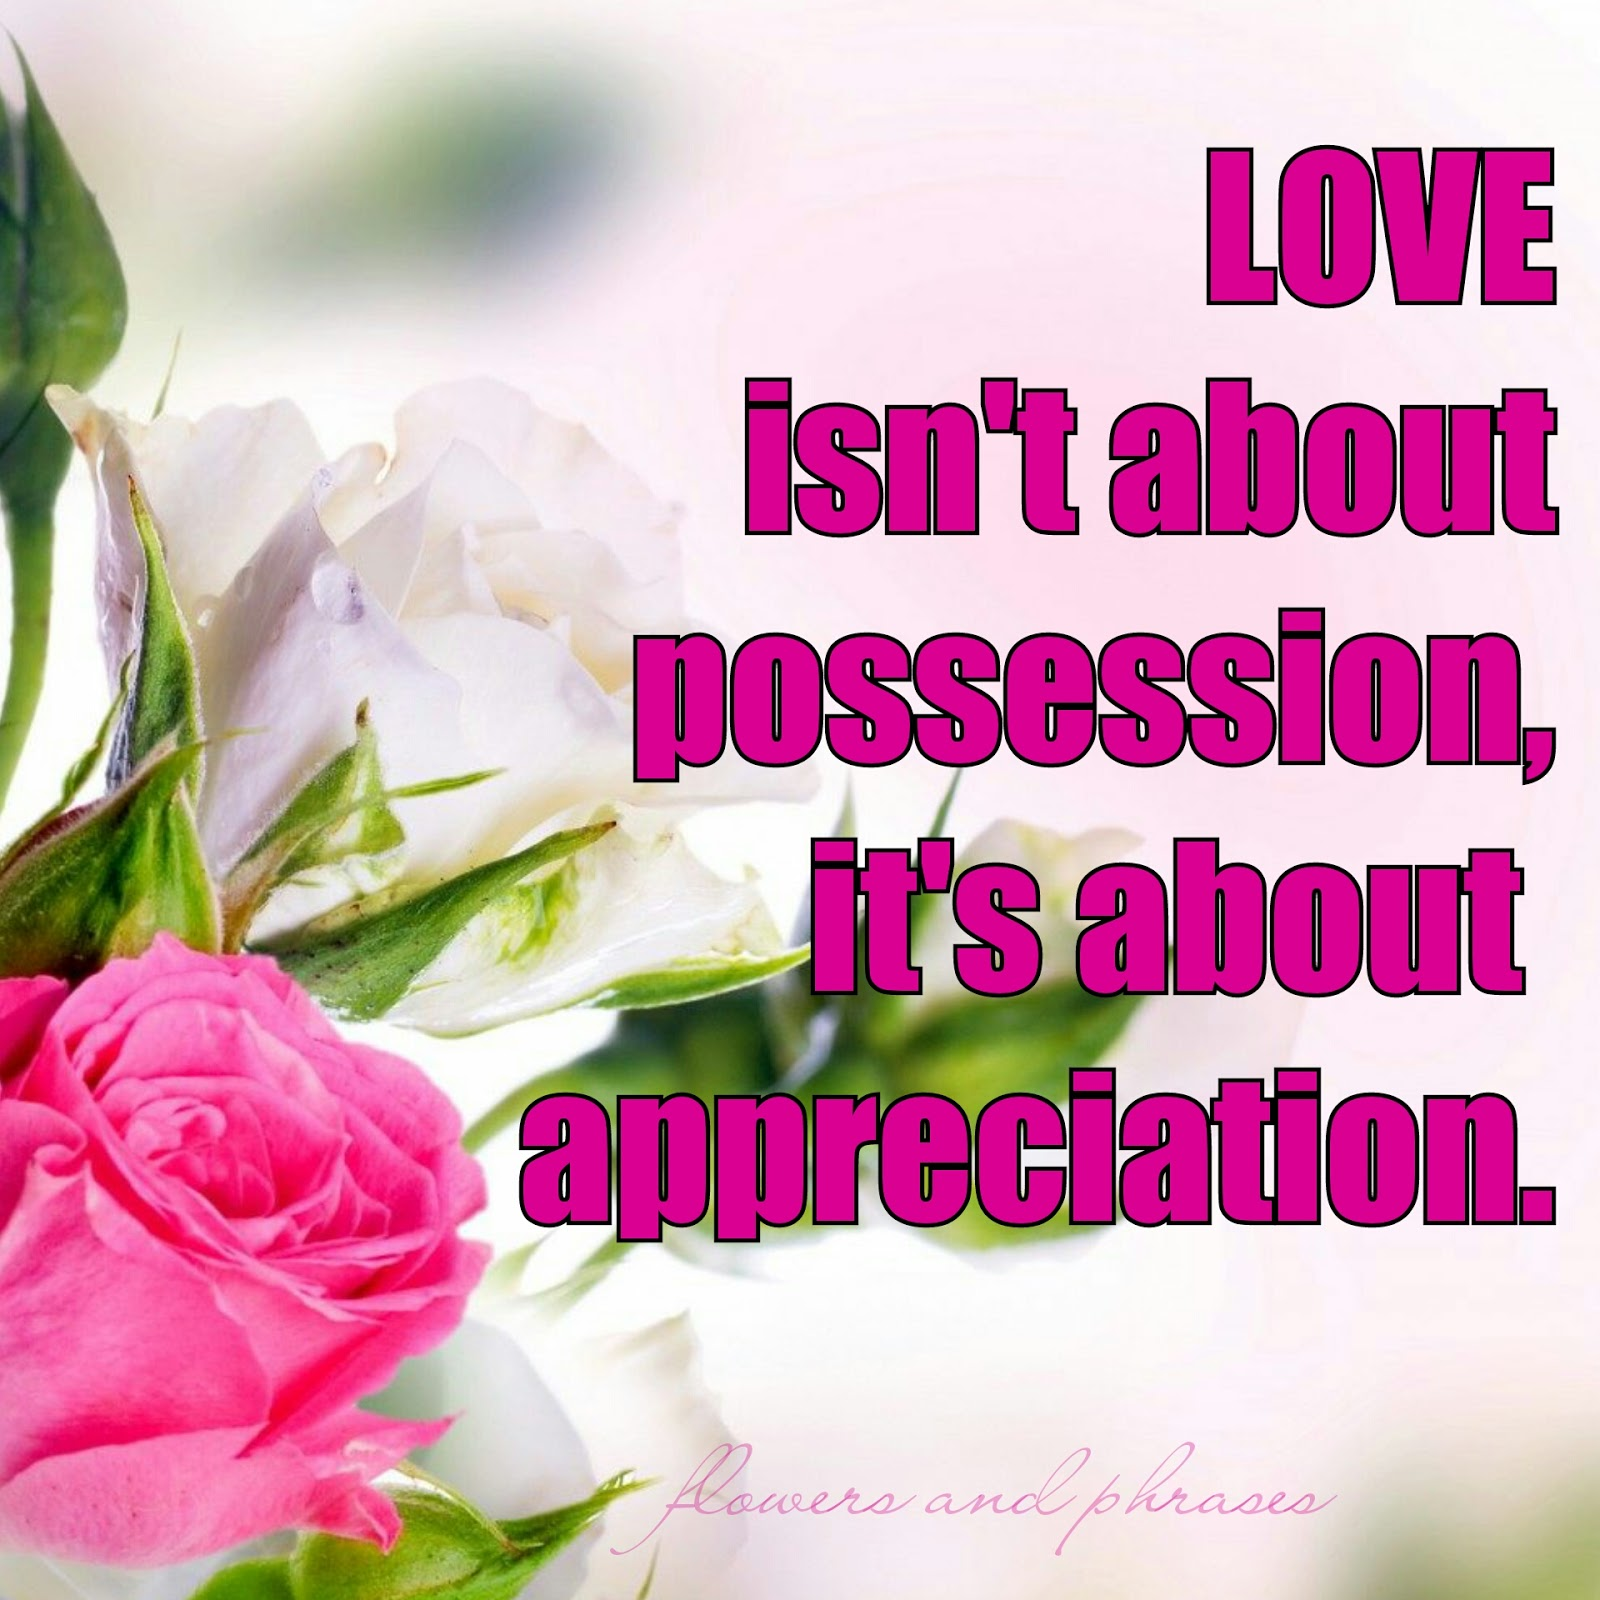 Flowers And Phrases Beautiful Love Quotes